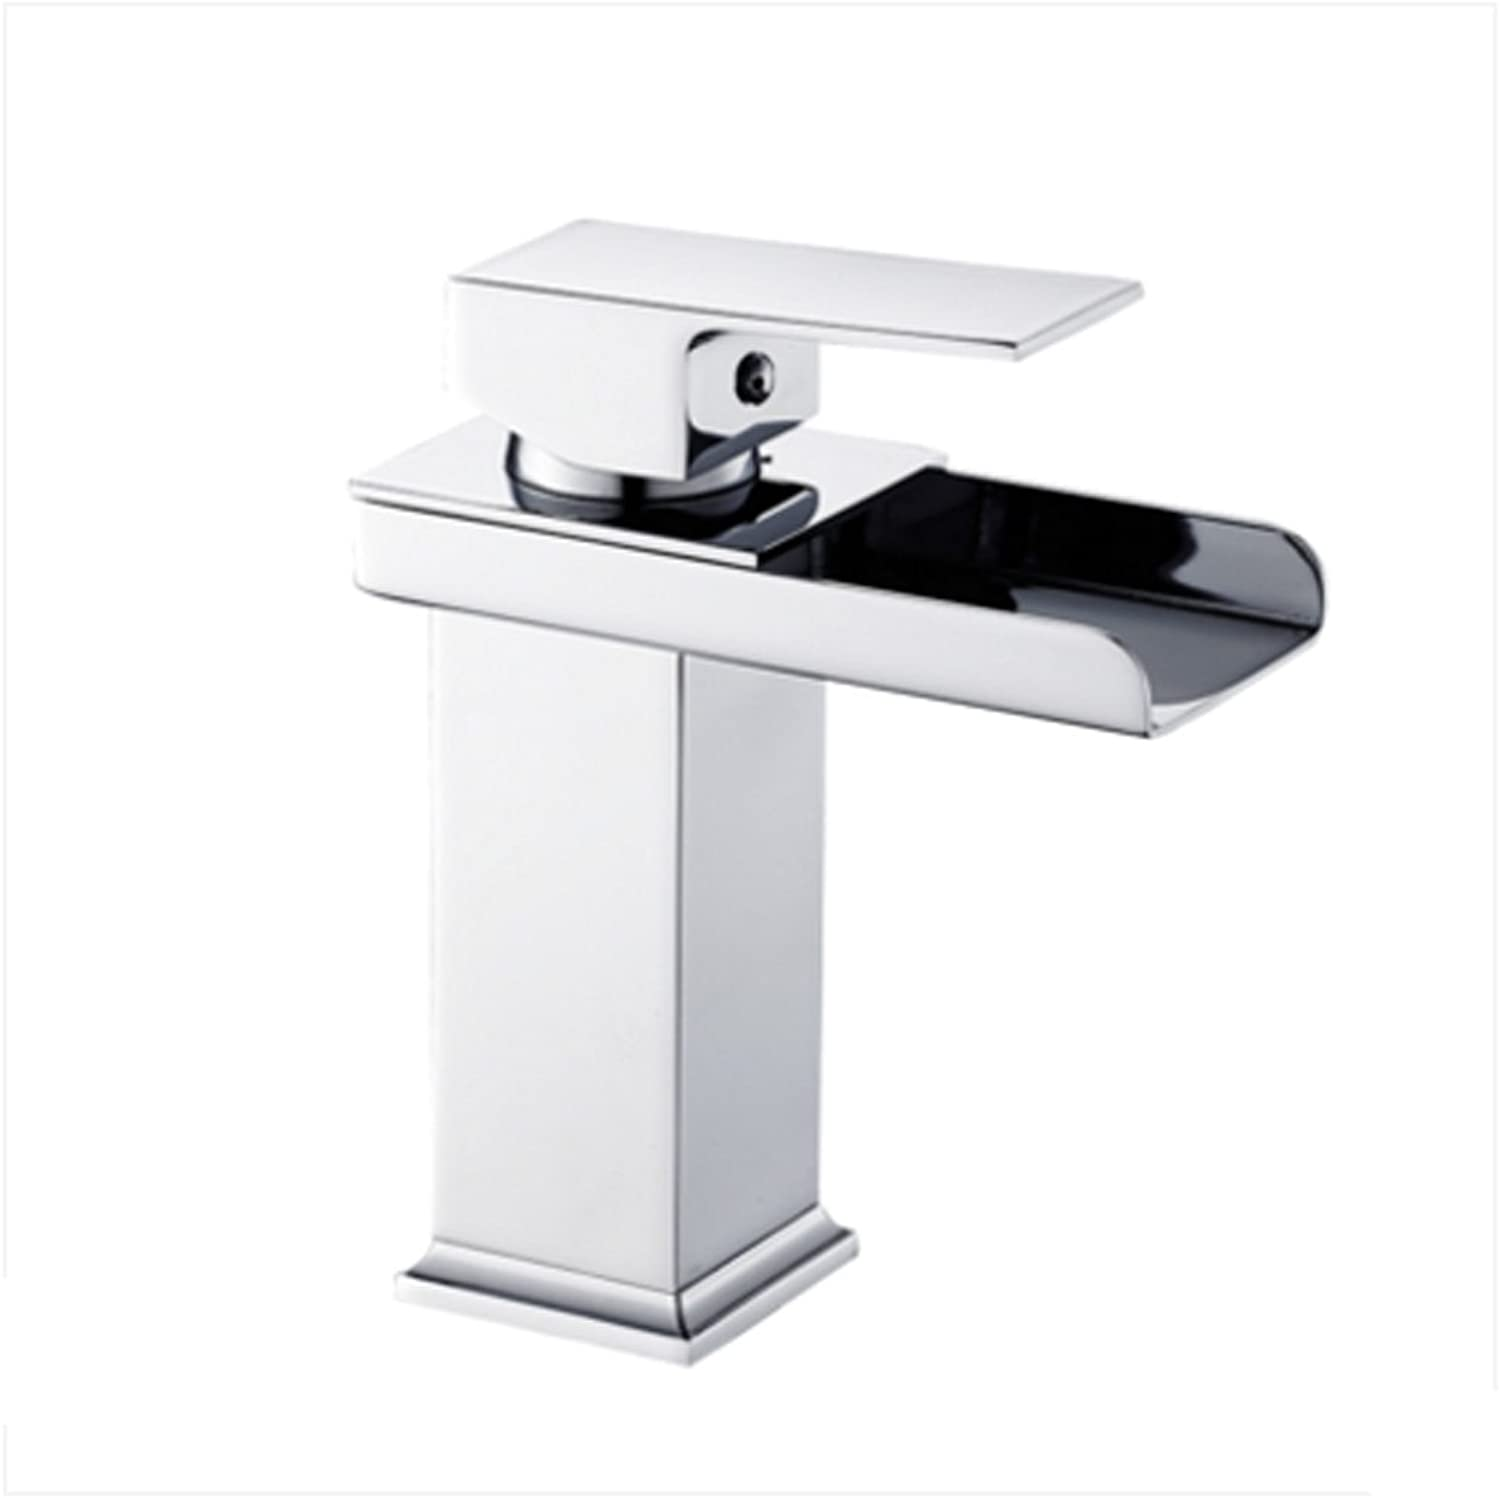 Waterfall Faucet Copper Single Hole Hot And Cold Regulation Bathroom Above Counter Basin Bathroom Wash Hole Size 32mm To 40mm Can Be Installed MUMUJIN (Size   138MM160MM)